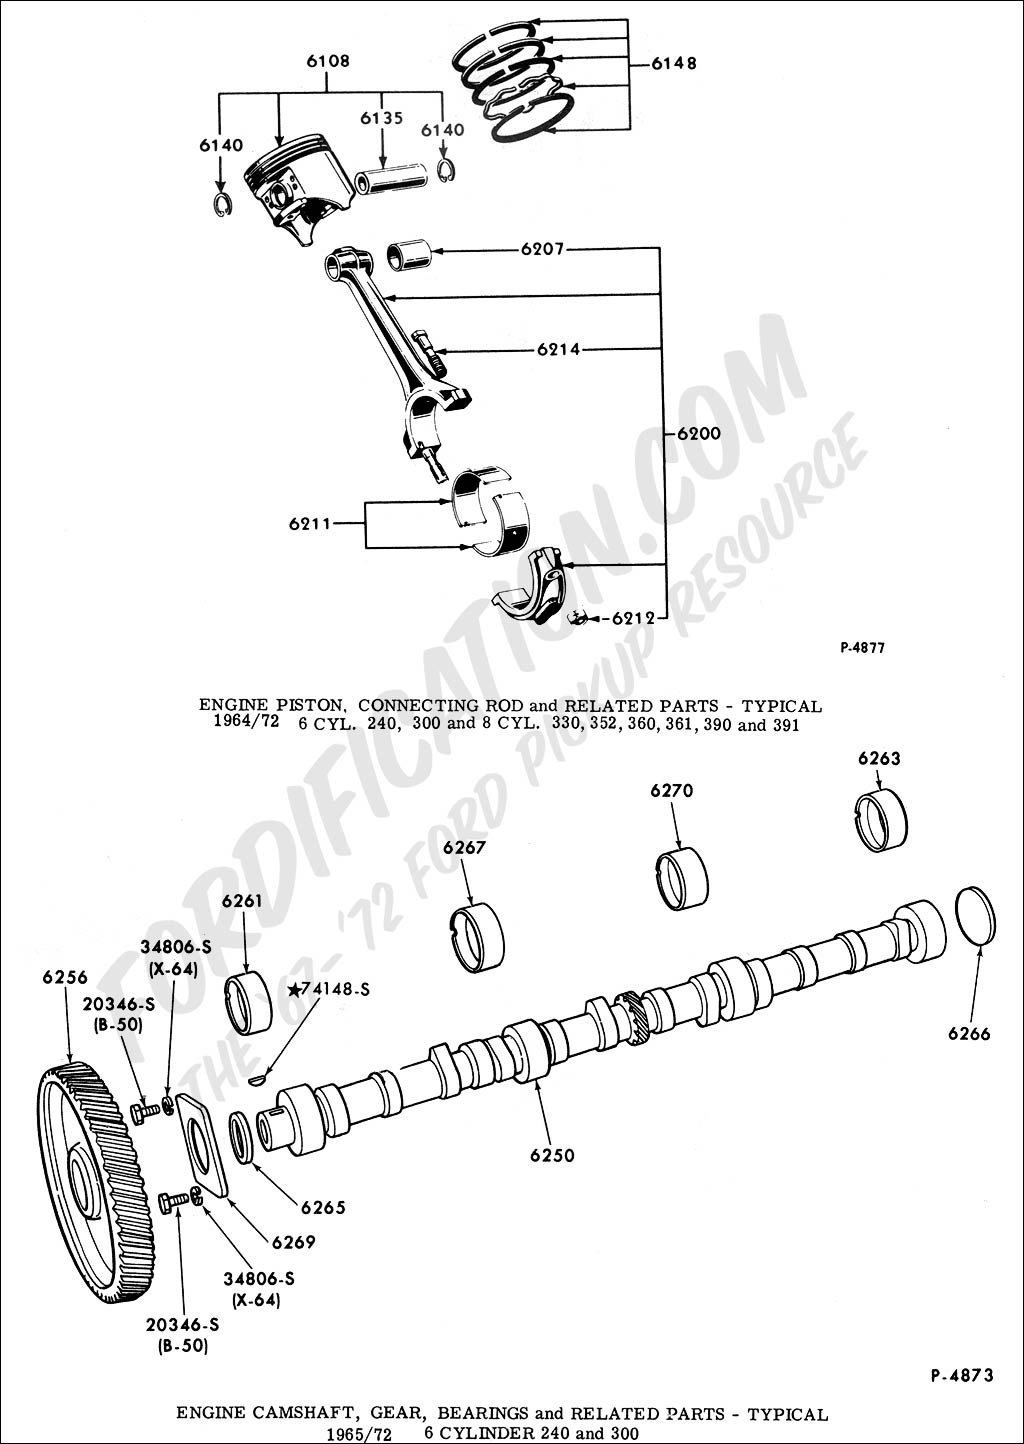 Ford Truck Technical Drawings and Schematics - Section E - Engine